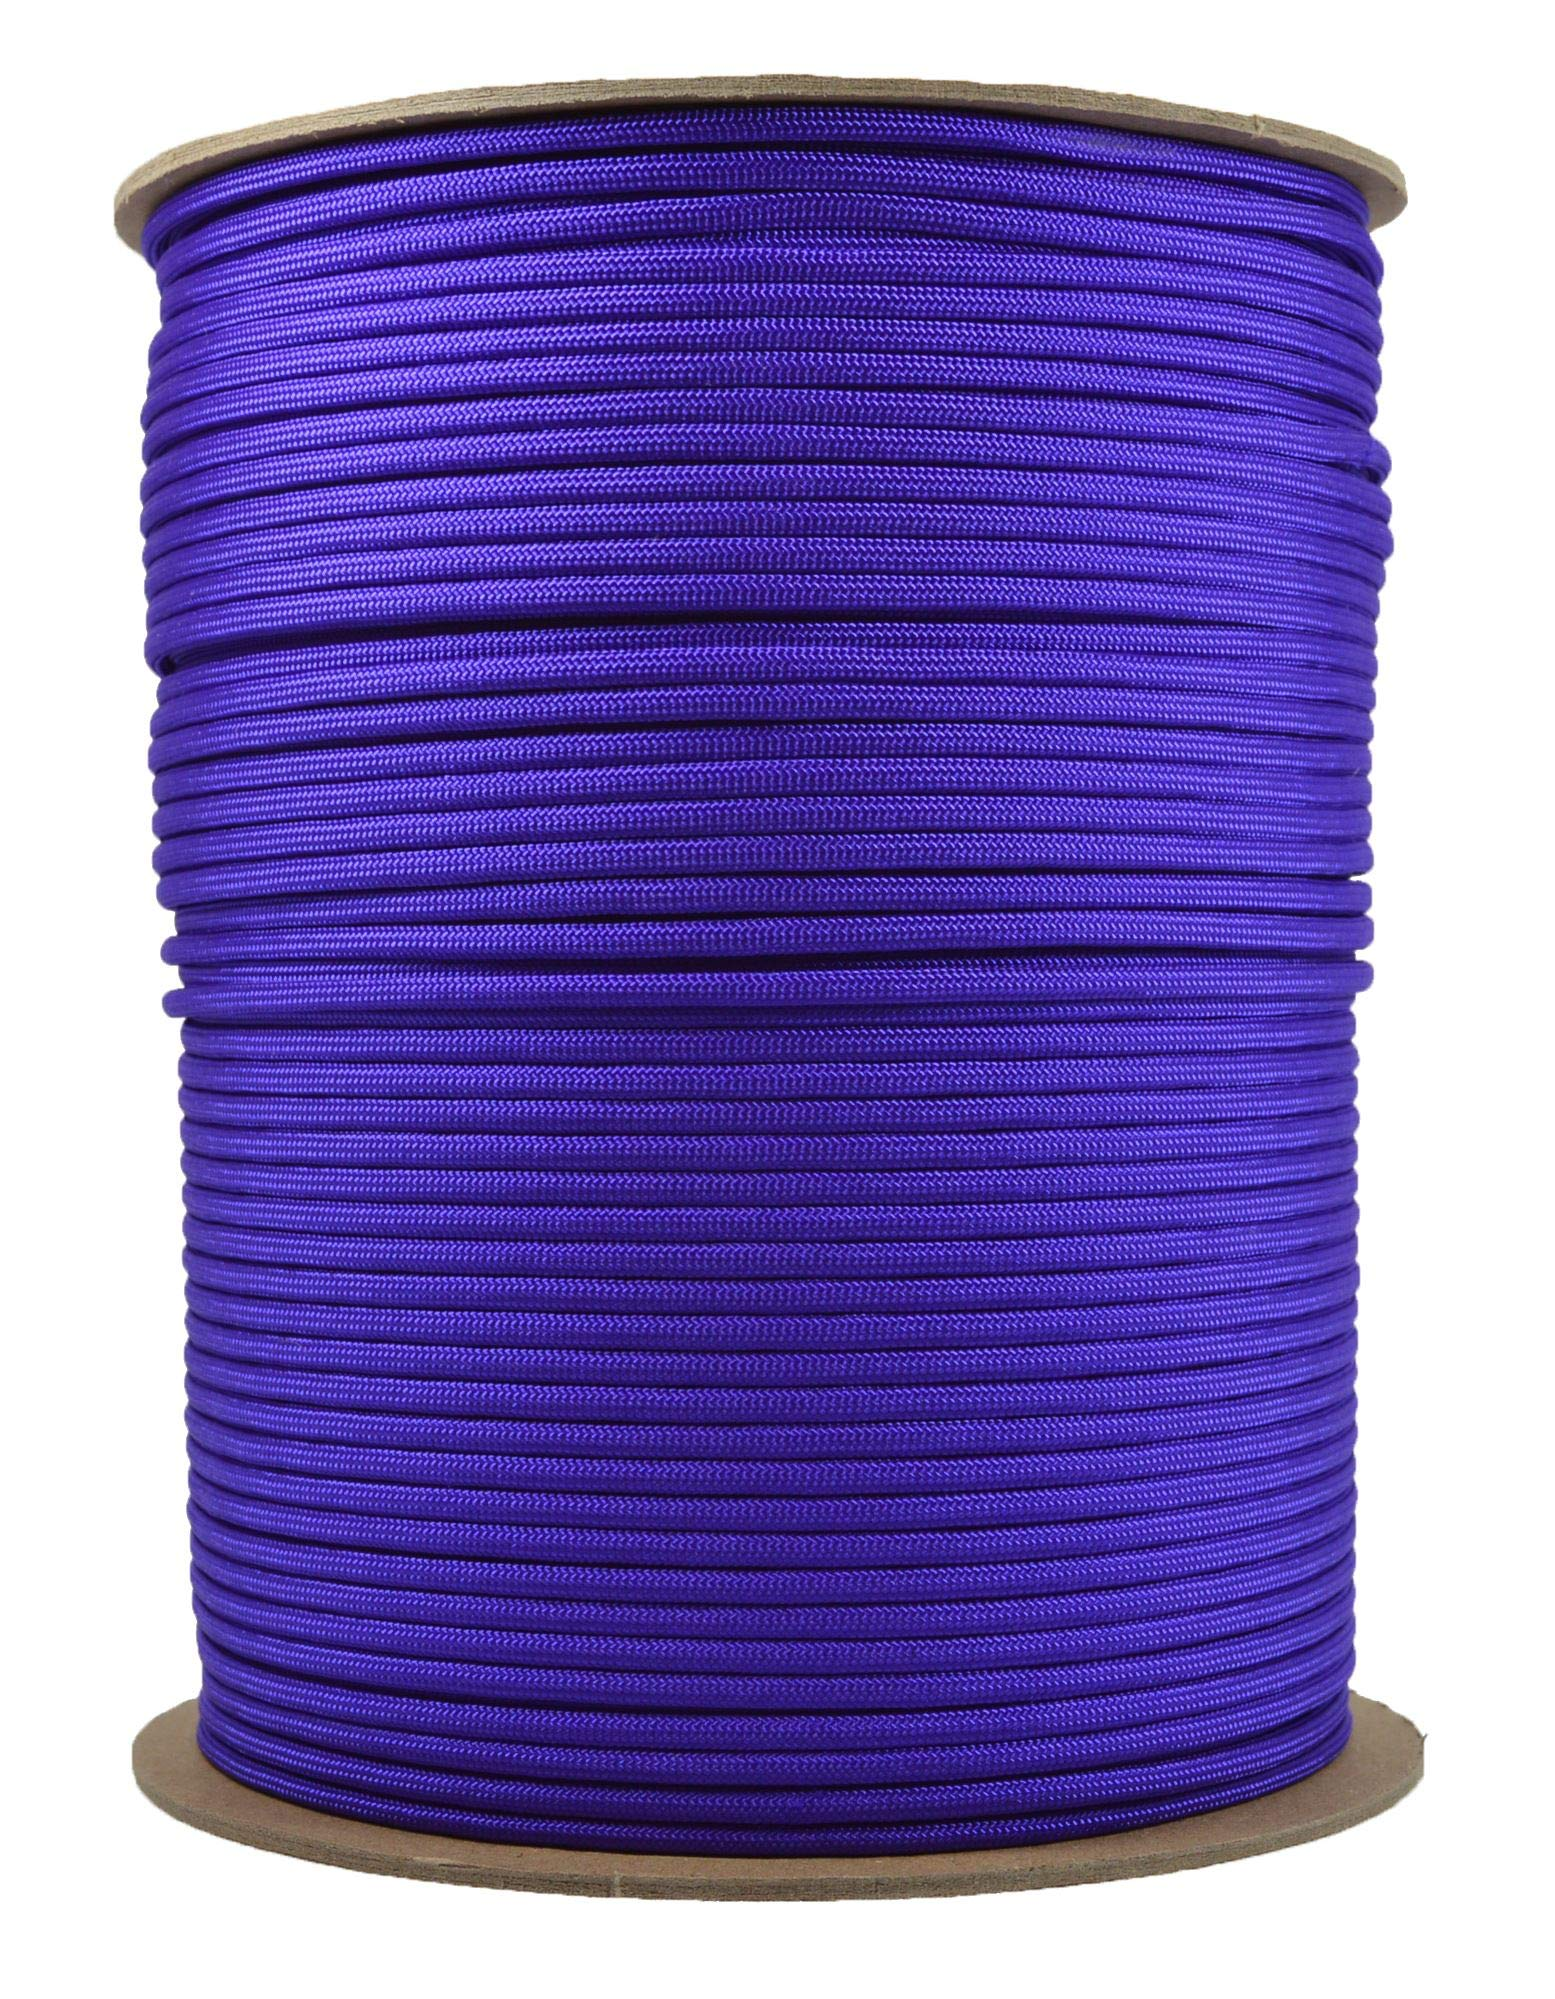 Acid Purple Mil-Spec Commercial Grade 550lb Type III Nylon Paracord - 1000 Foot Spool